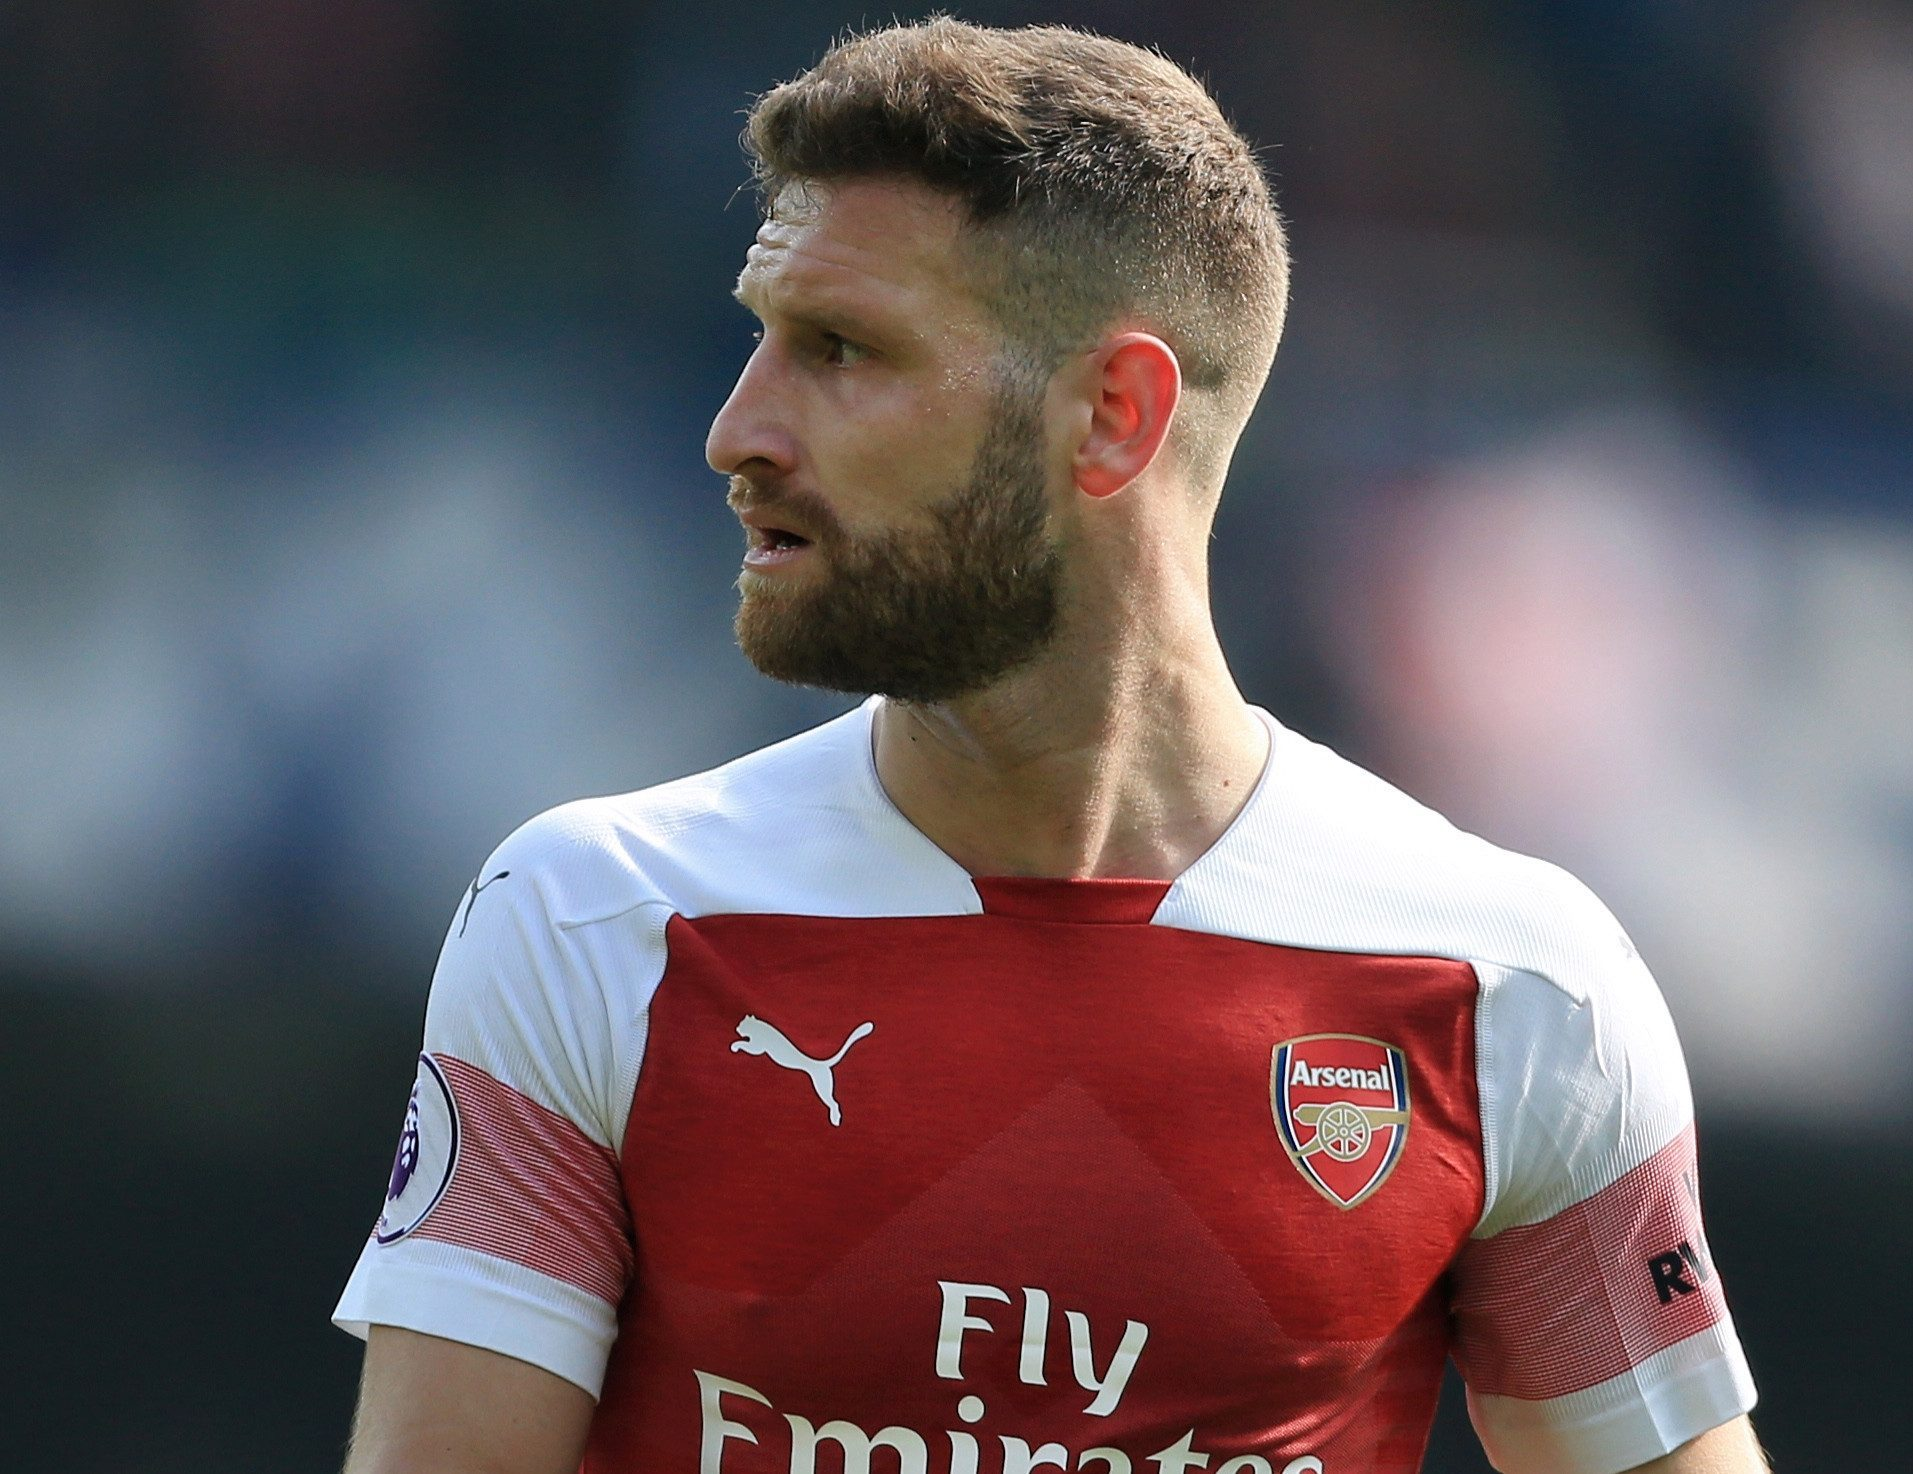 Shkodran Mustafi is just one Arsenal flop who needs selling